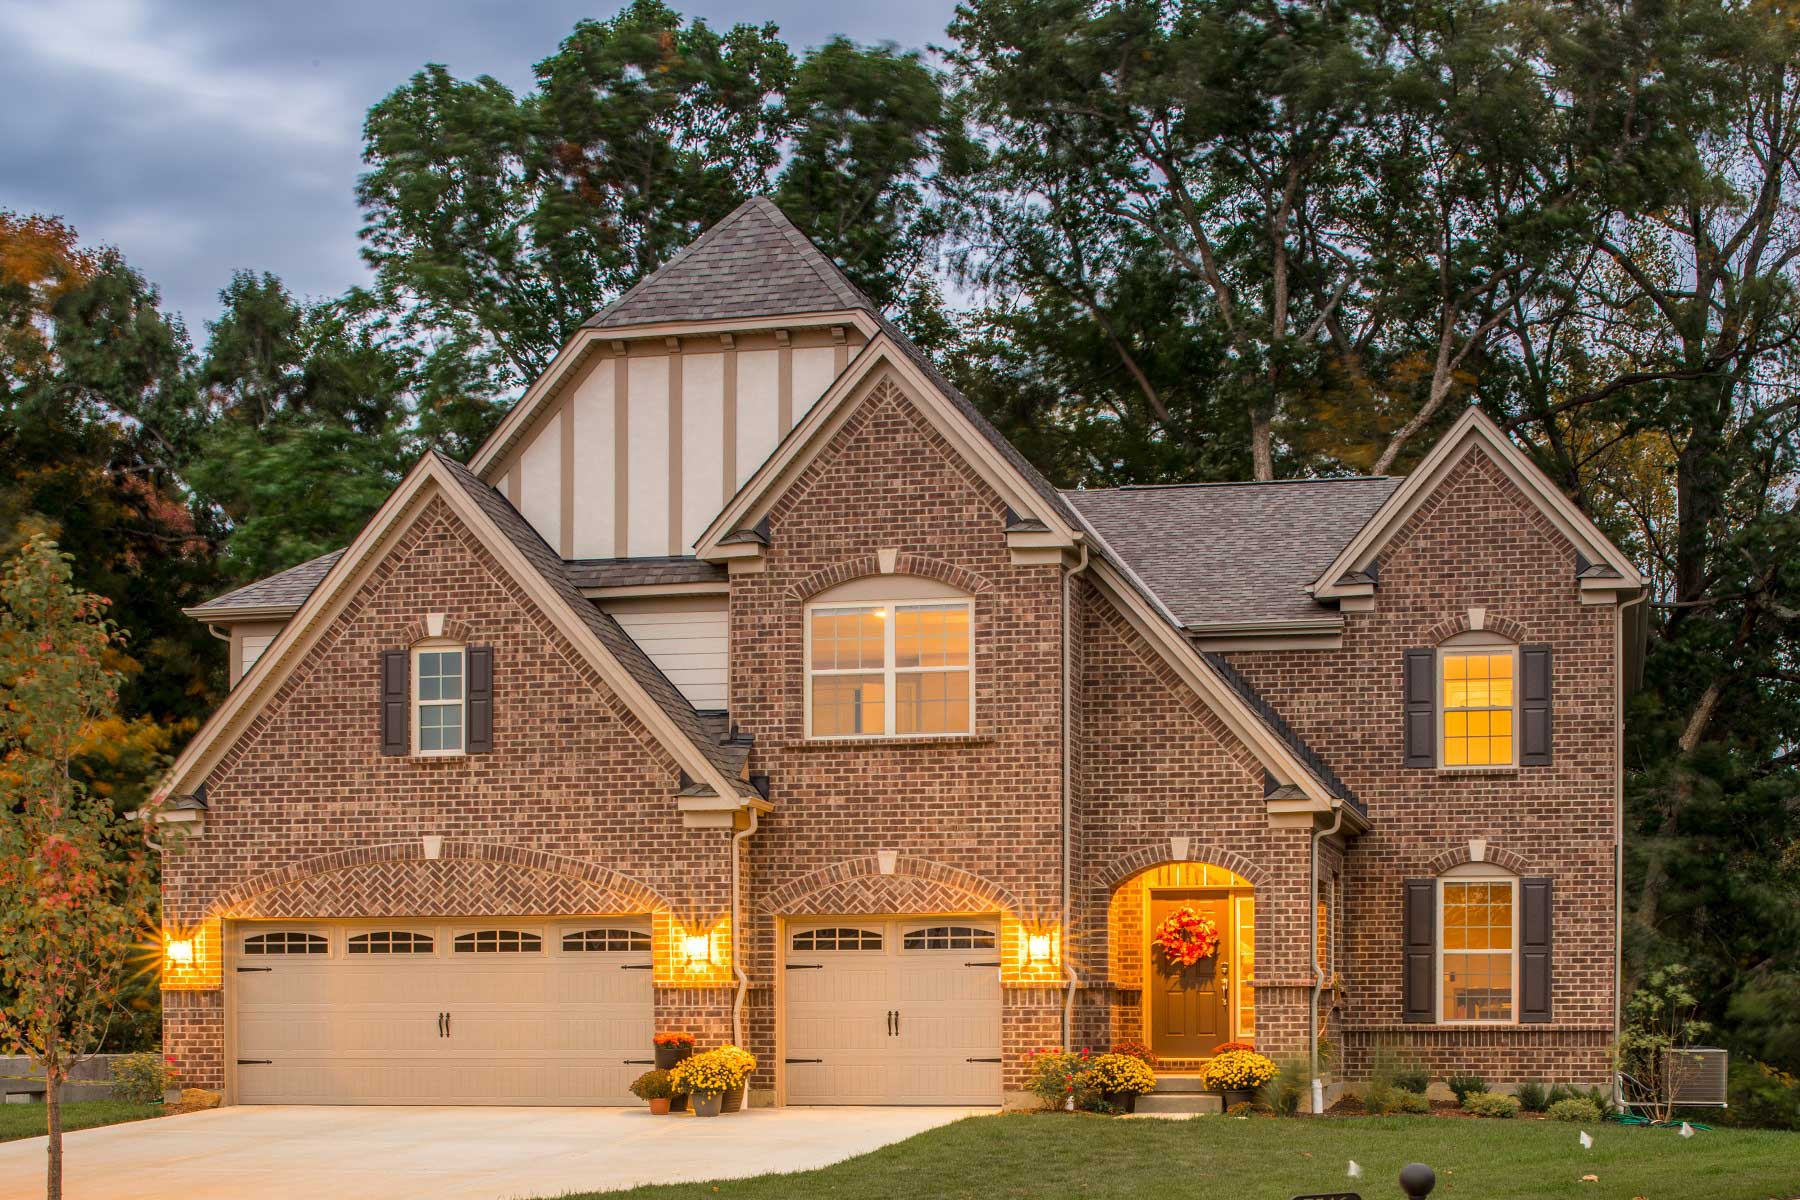 Carriage Hill Walnut Pointe Ridge Front Exterior